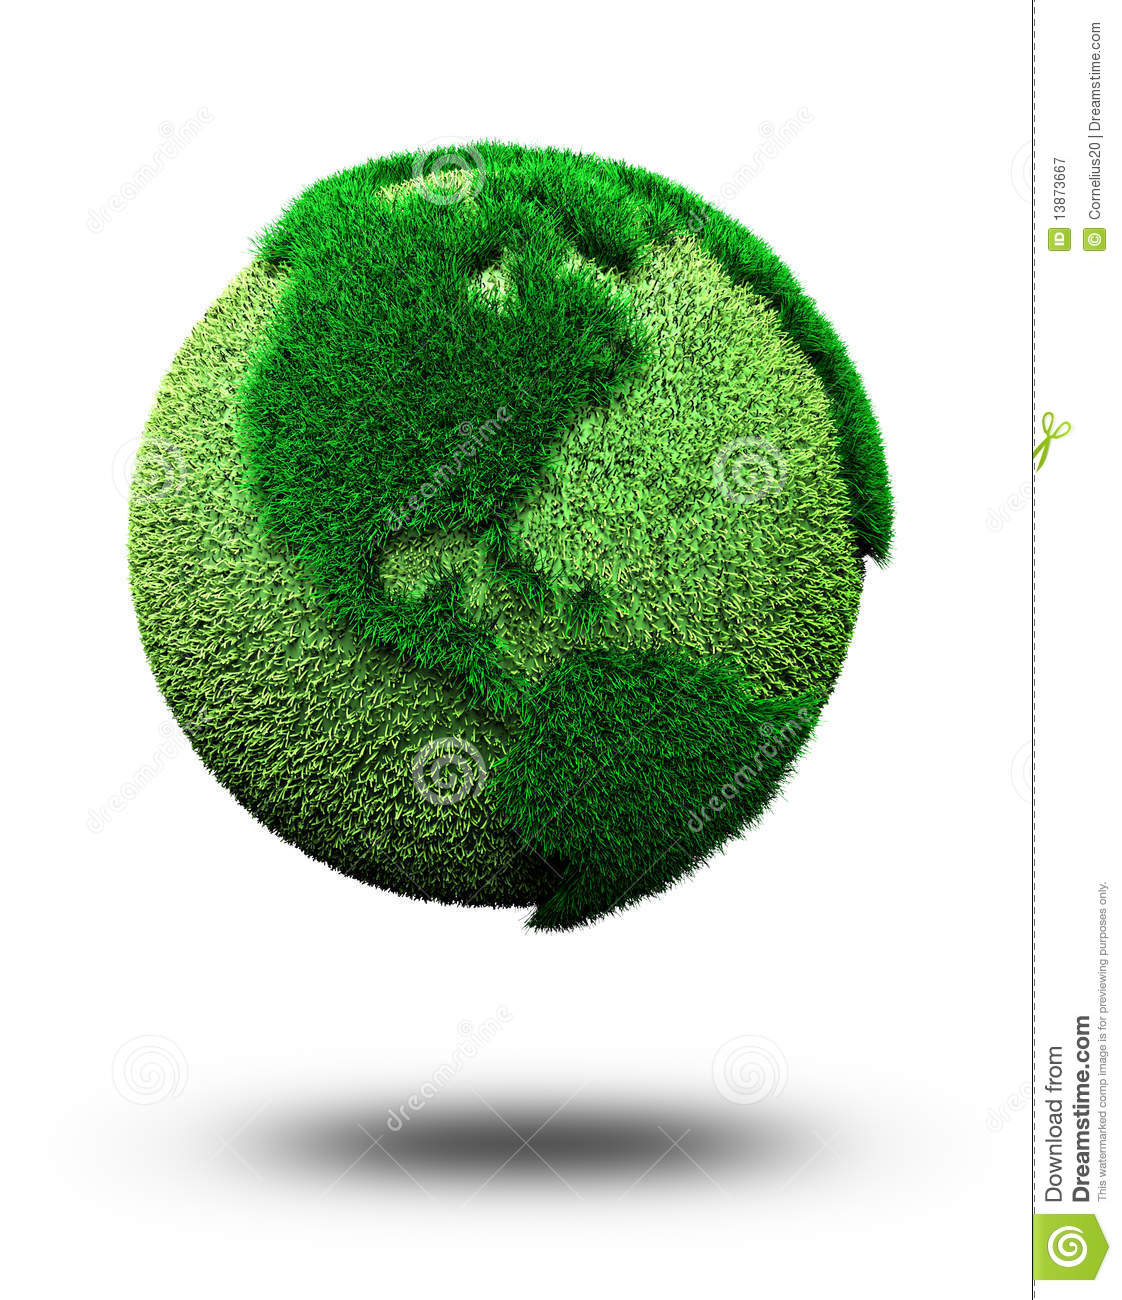 Green Earth Royalty Free Stock Photography - Image: 13873667